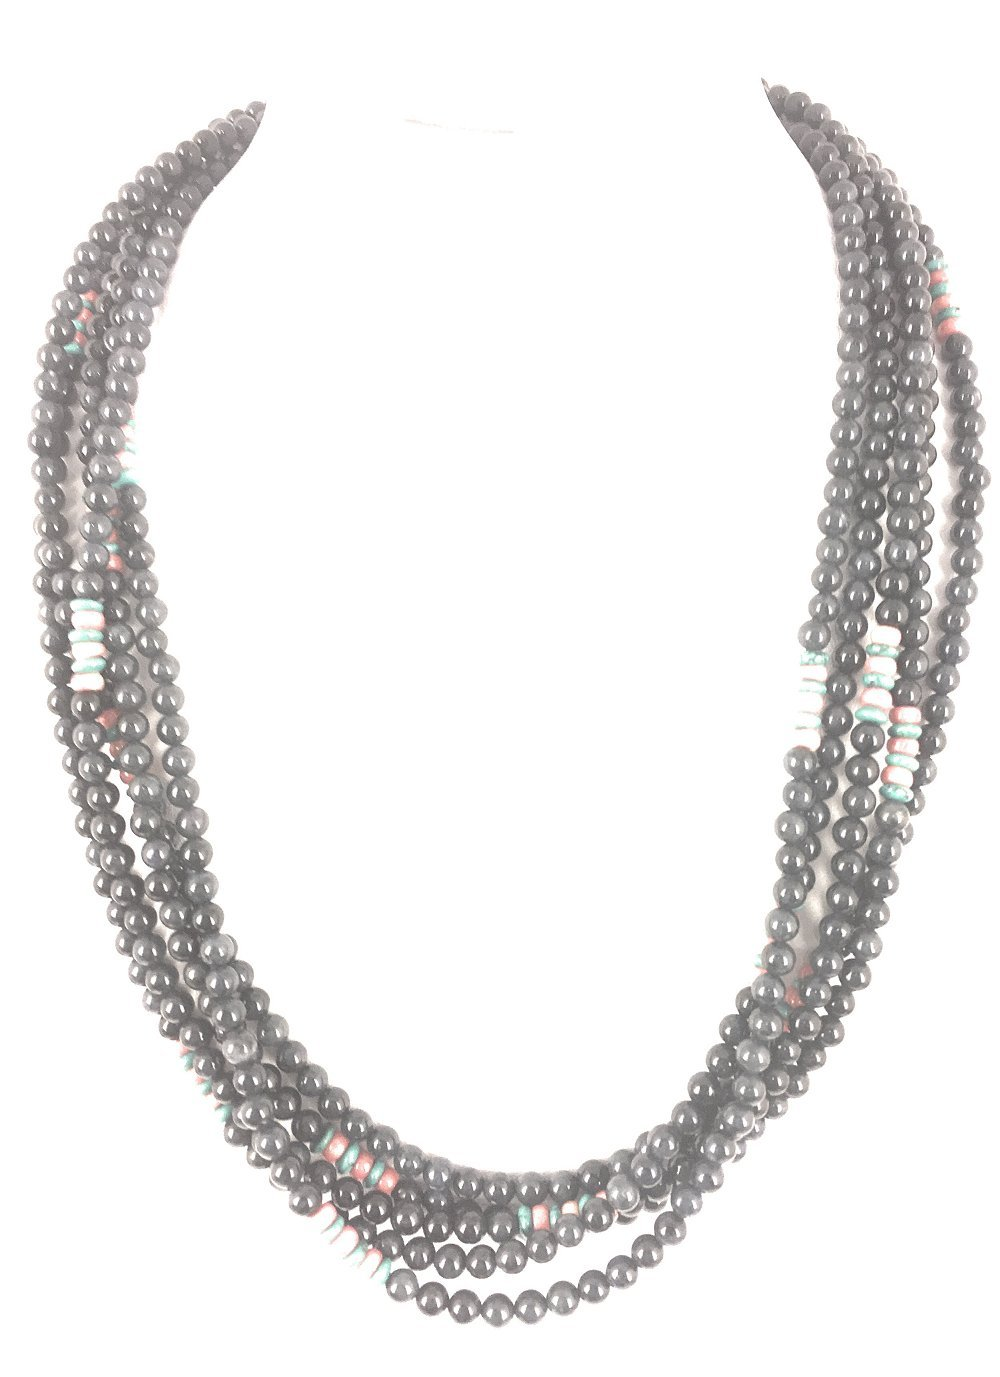 Masha Storewide Sale ! Sterling Silver Necklace By Demodoride, Turquiose, Made in USA - Exclusive Southwestern Handmade Jewelry, 5 Strand Gift